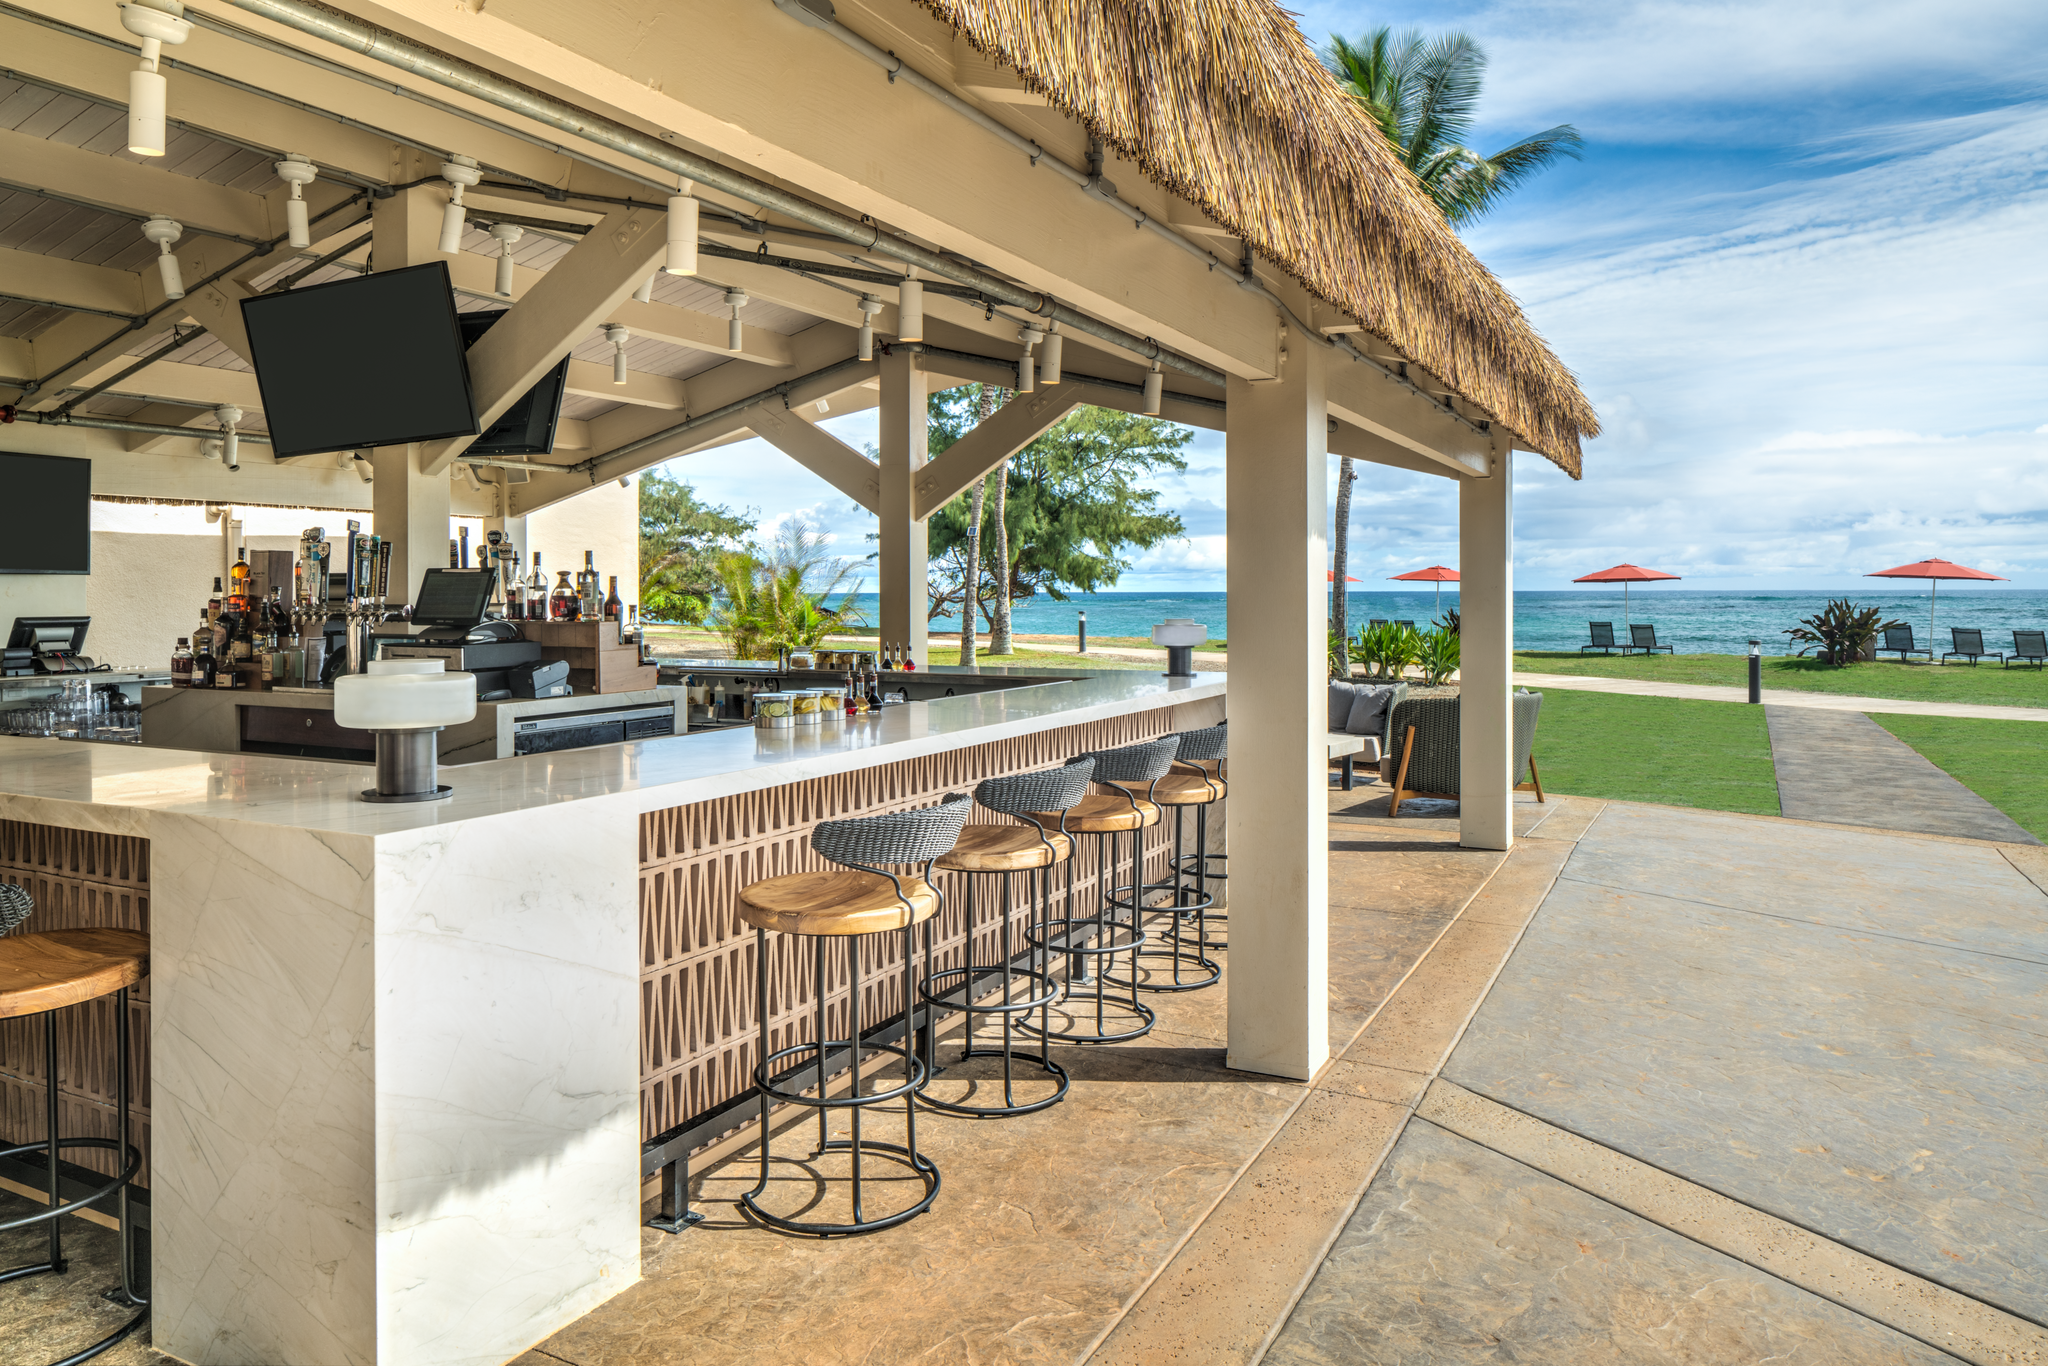 The resort went from a two-food-outlet property to having four restaurants.